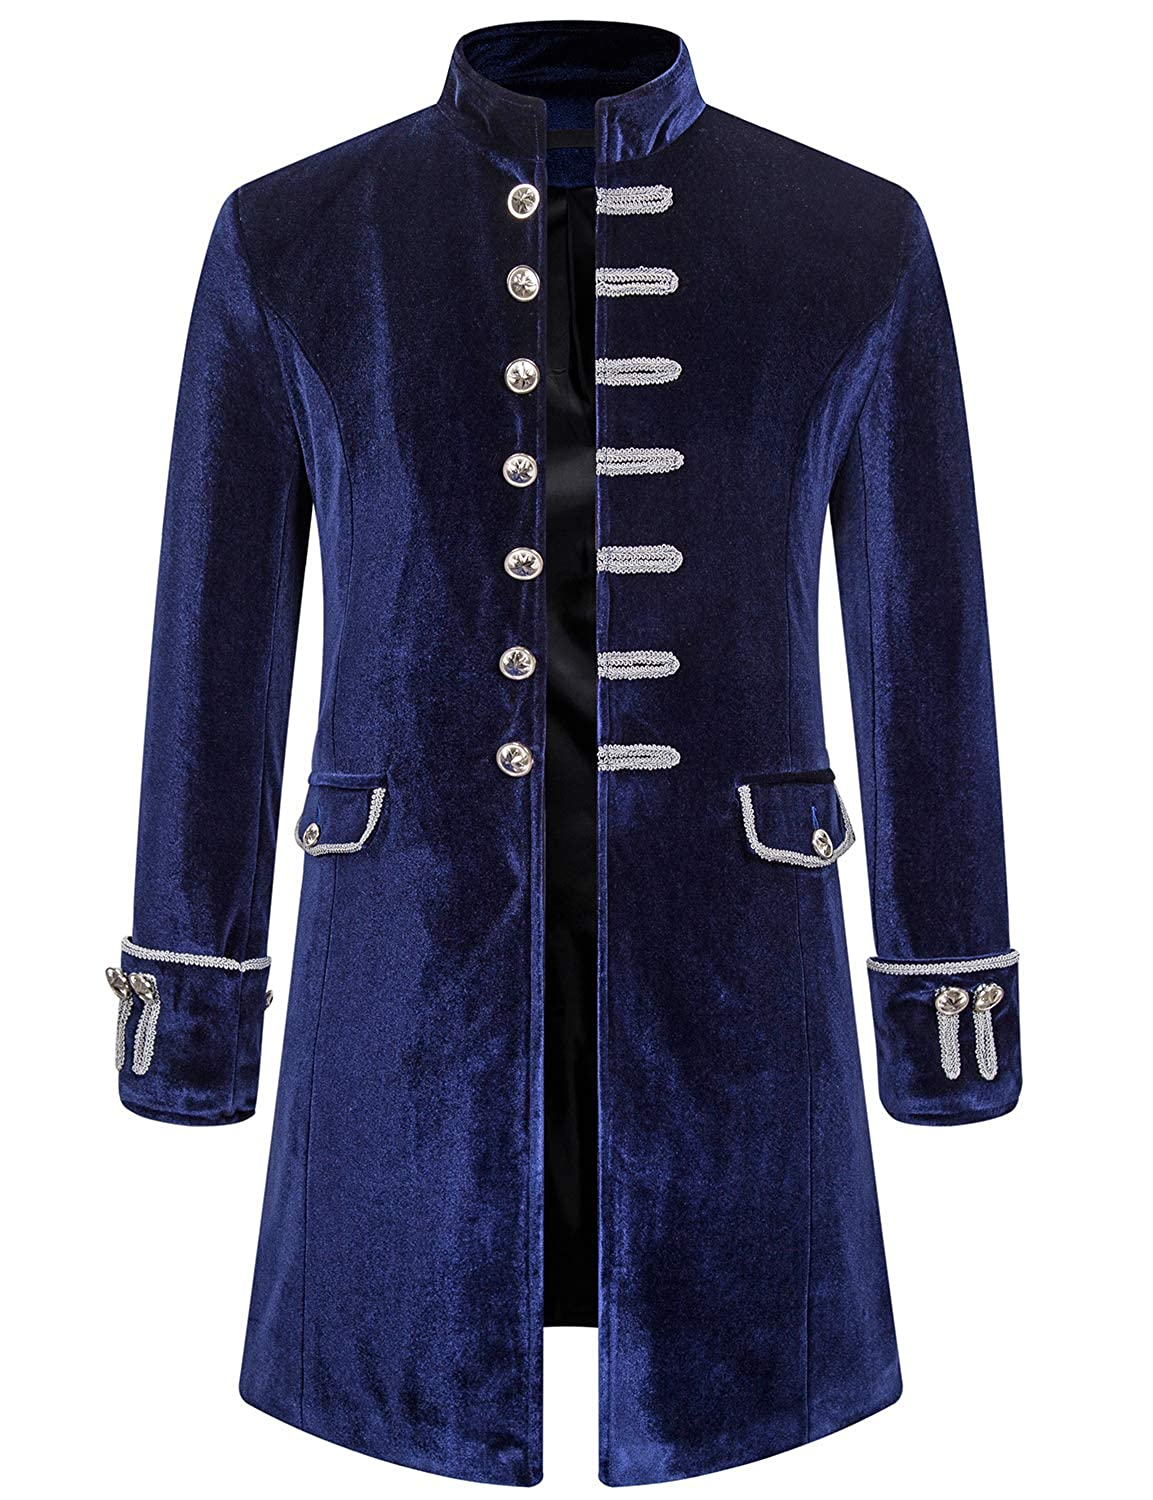 Masquerade Ball Clothing: Masks, Gowns, Tuxedos Mens Vintage Halloween Costume Gothic Style Long Jacket Steampunk Victorian Frock Coat $62.99 AT vintagedancer.com